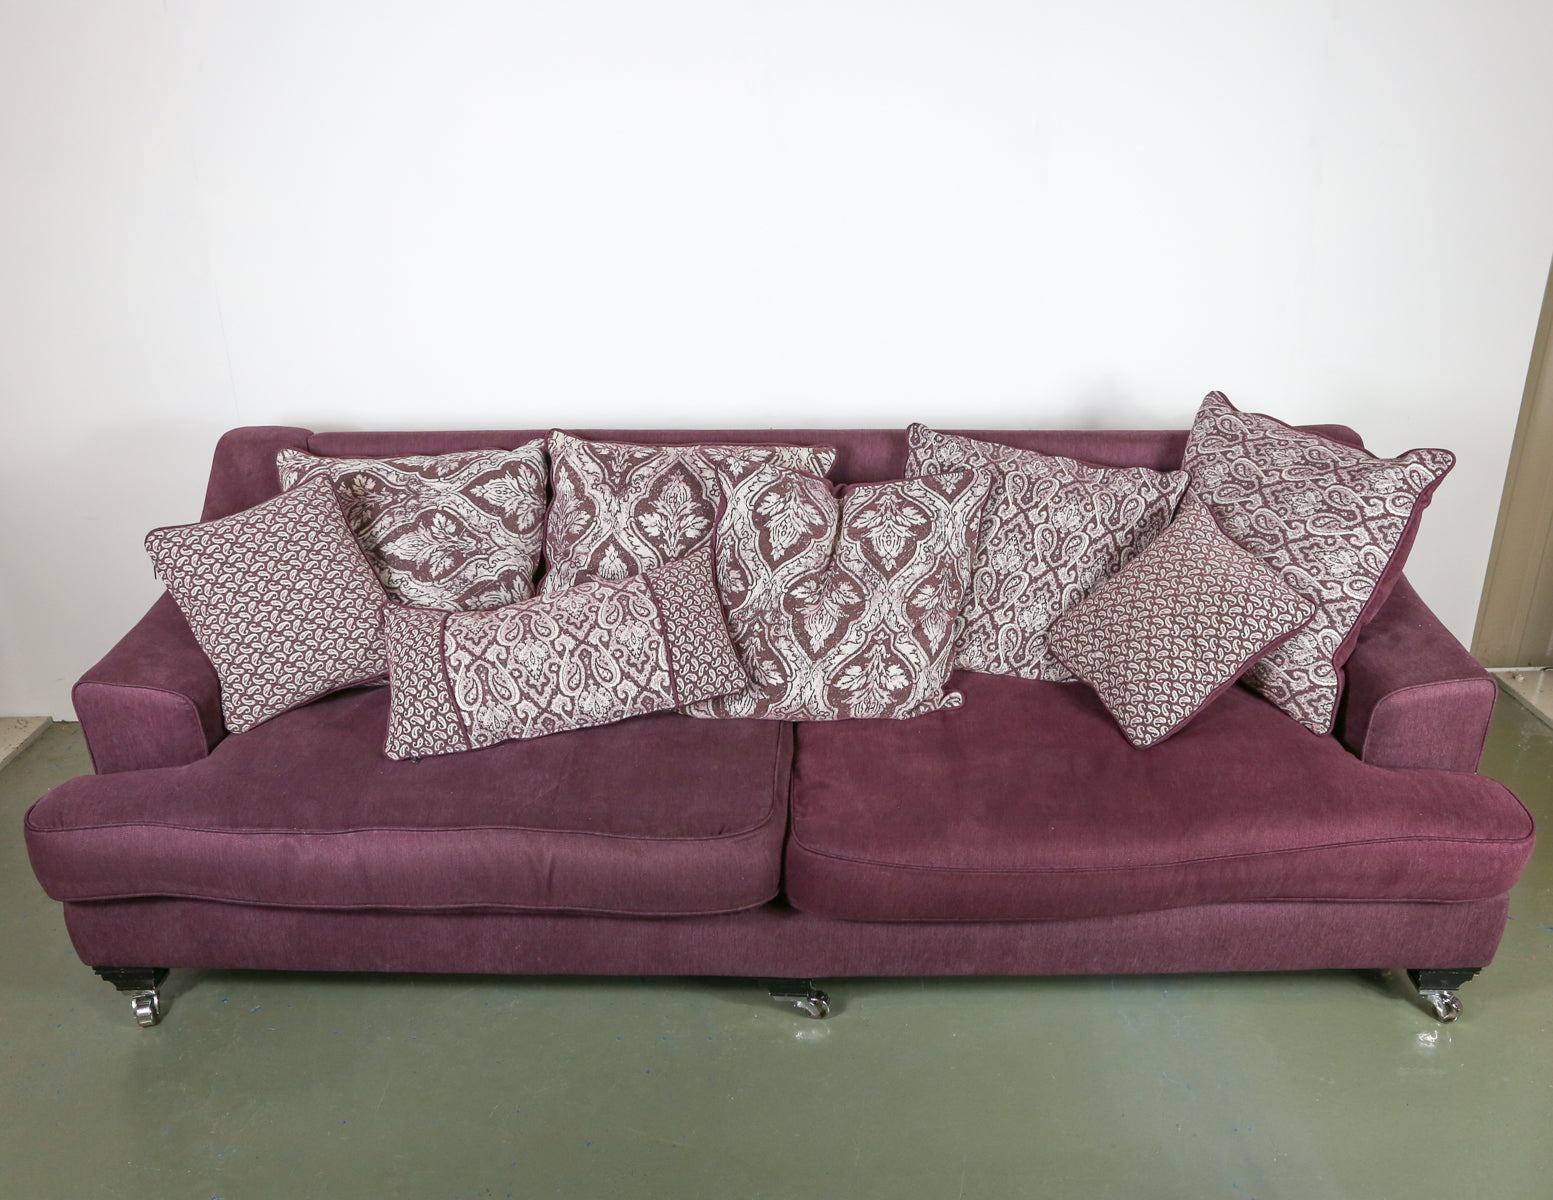 Sofology 3 Seater Sofa